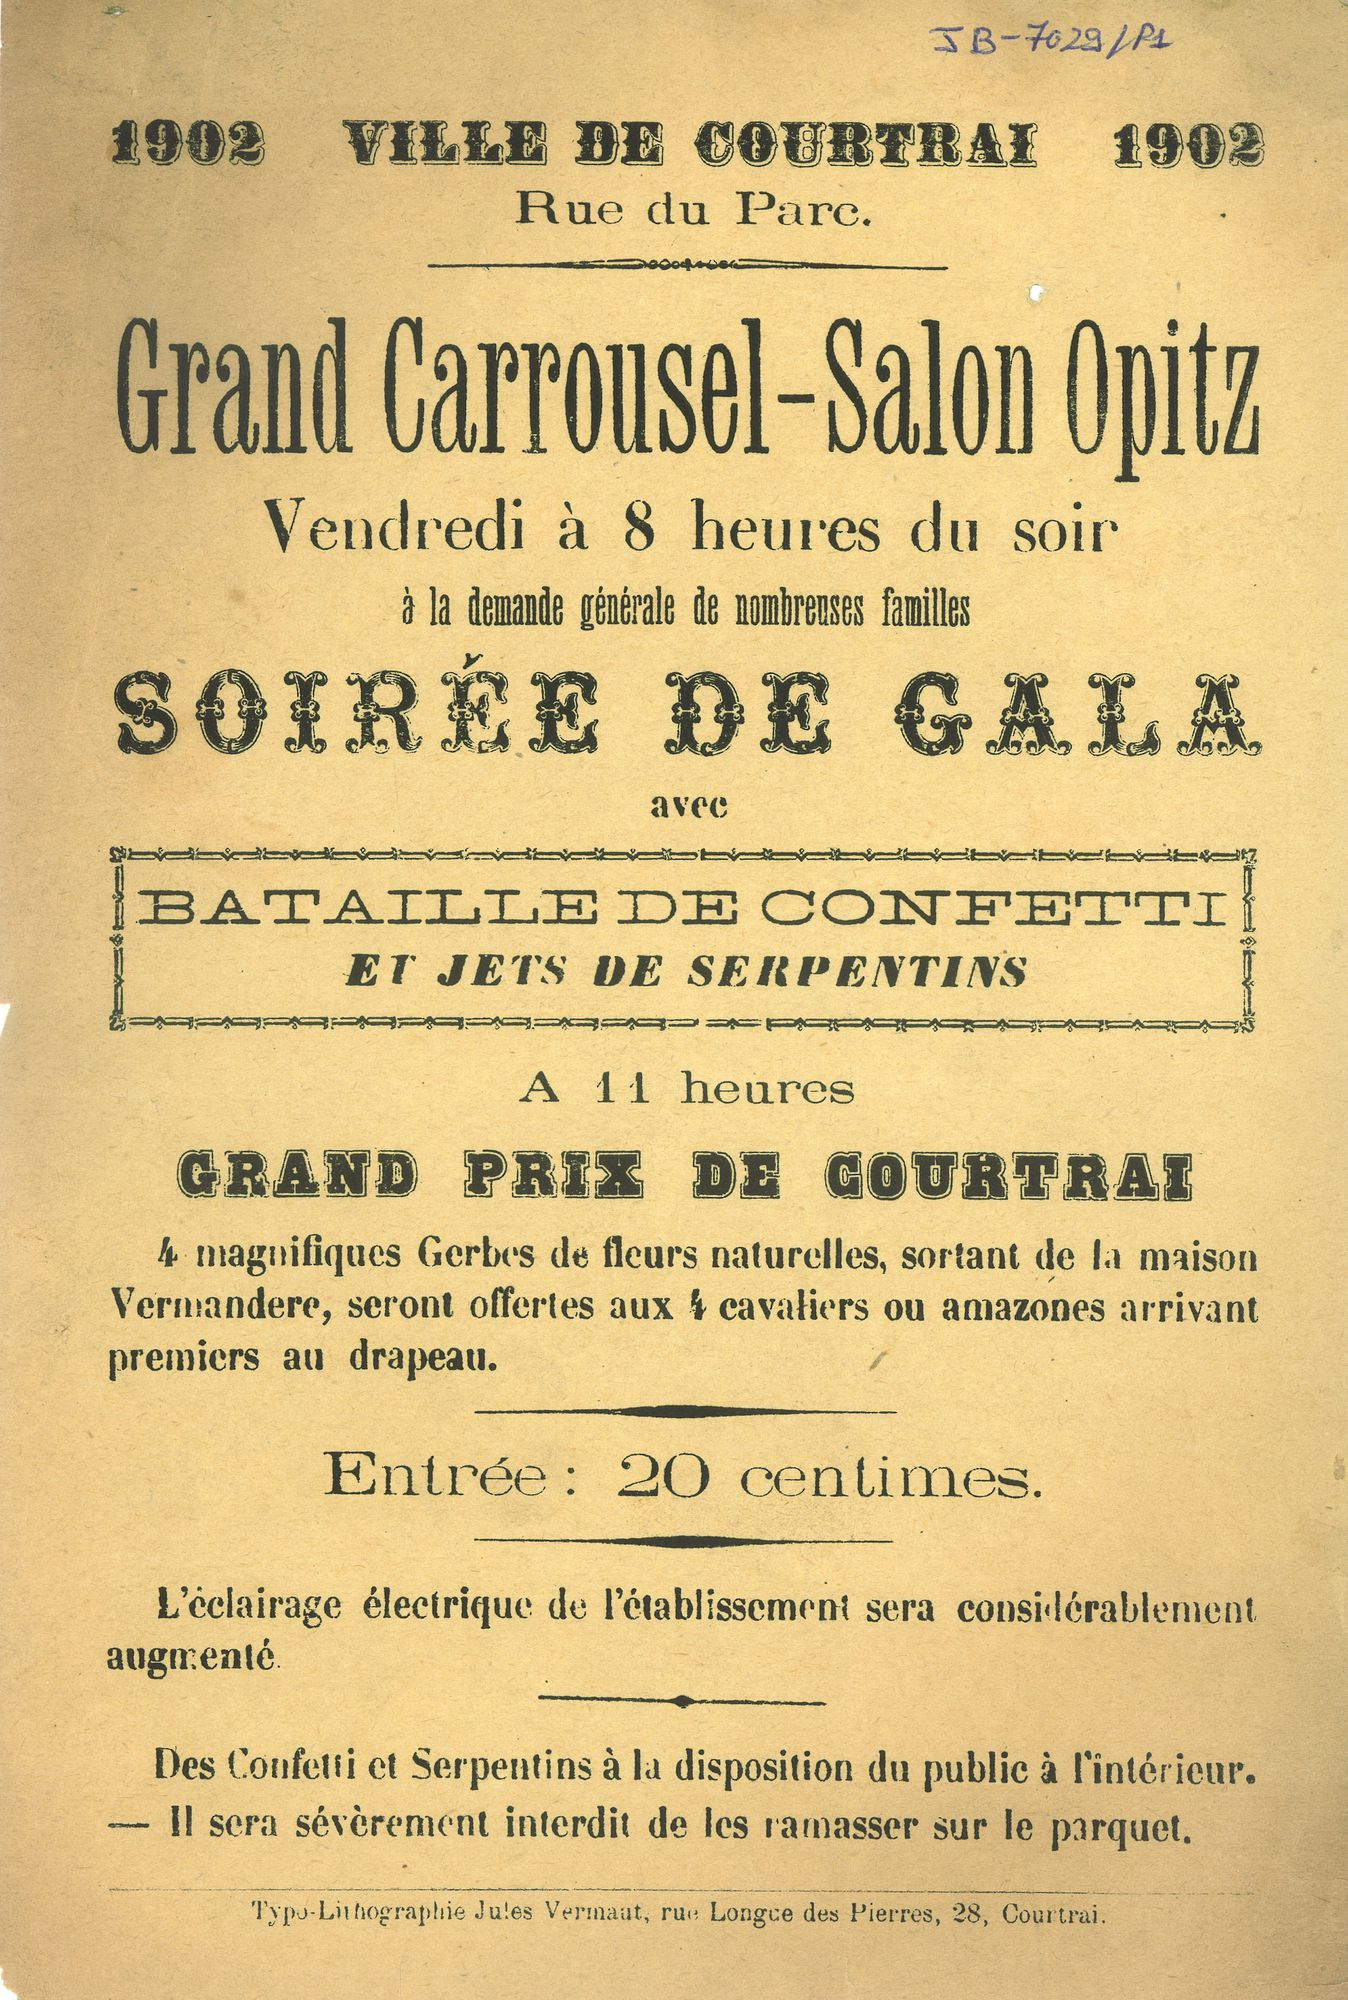 Paasfoor 1902: Grand Carrousel-Salon Opitz